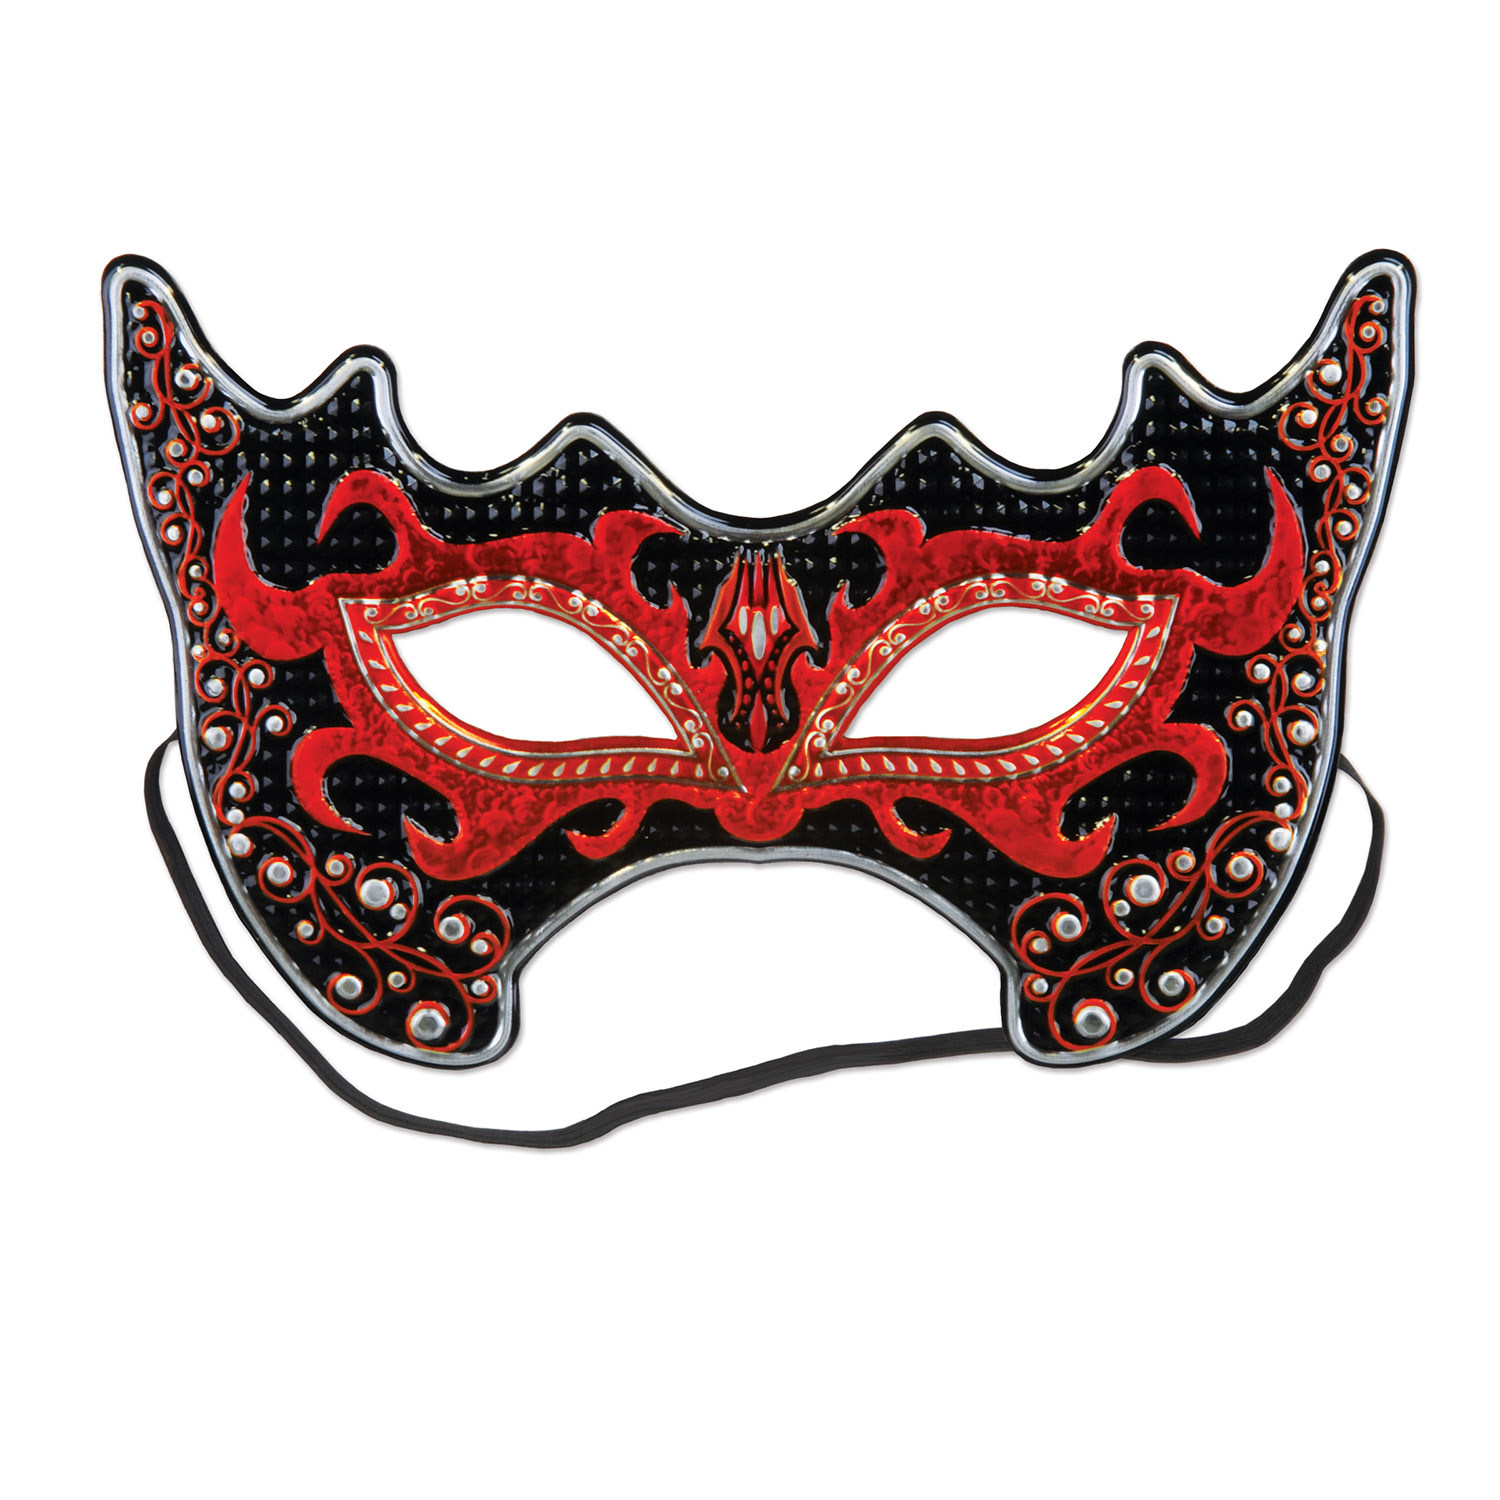 Costume Mask (Pack of 12) Costume Mask., mardi gras, new years eve, masquerade, wholesale, inexpensive, bulk, party favor